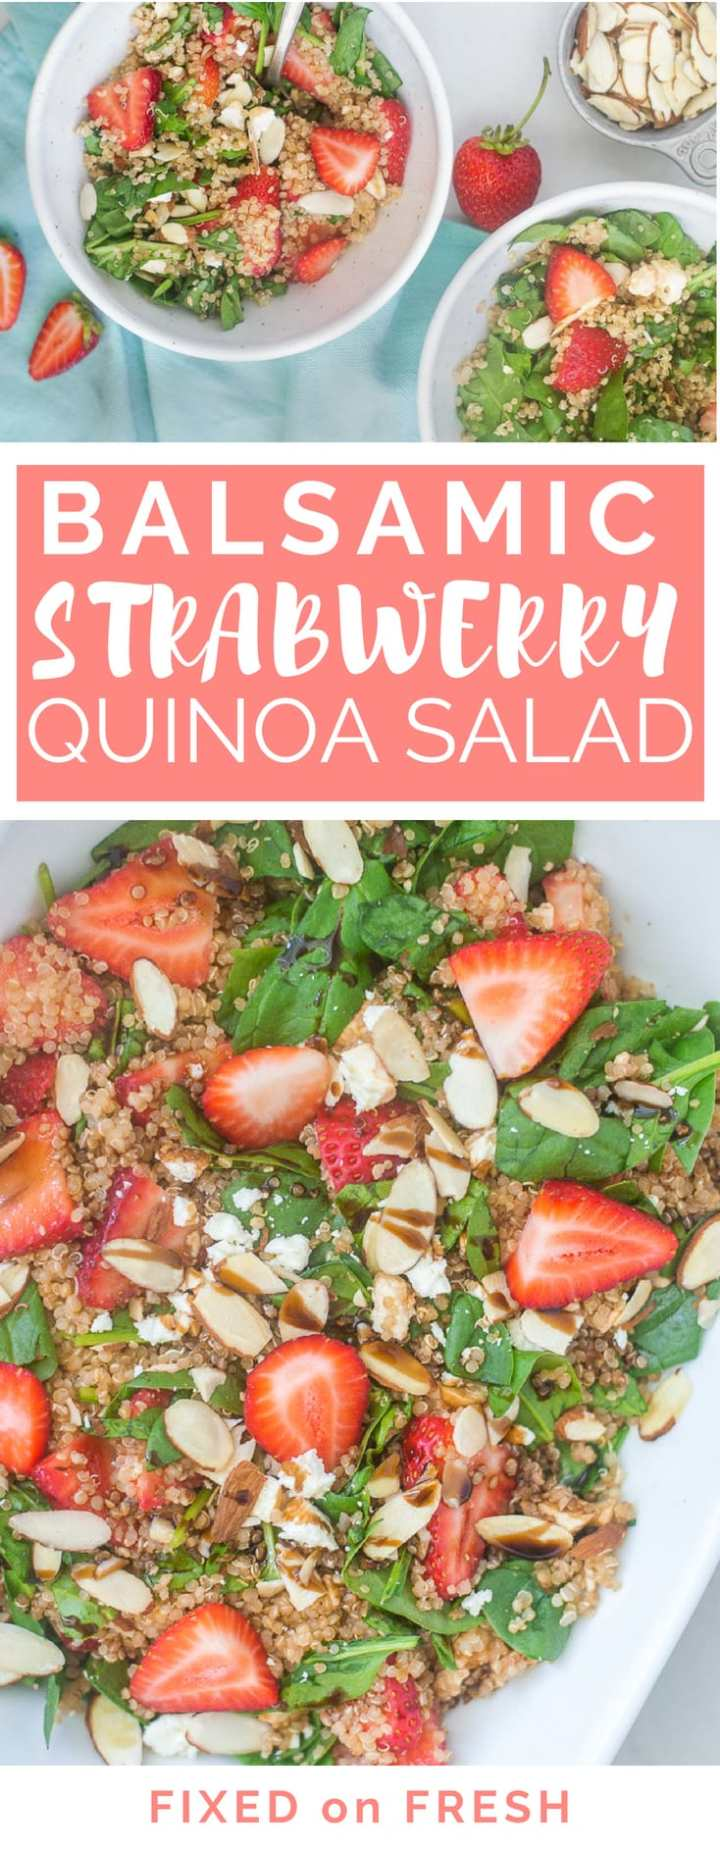 Balsamic Strawberry Quinoa Salad is an easy and fresh vegetarian salad that you can eat alone or as a side dish. This easy quinoa salad recipe is loaded with fresh strawberries, feta, spinach and then topped with a balsamic glaze and crunchy almonds.